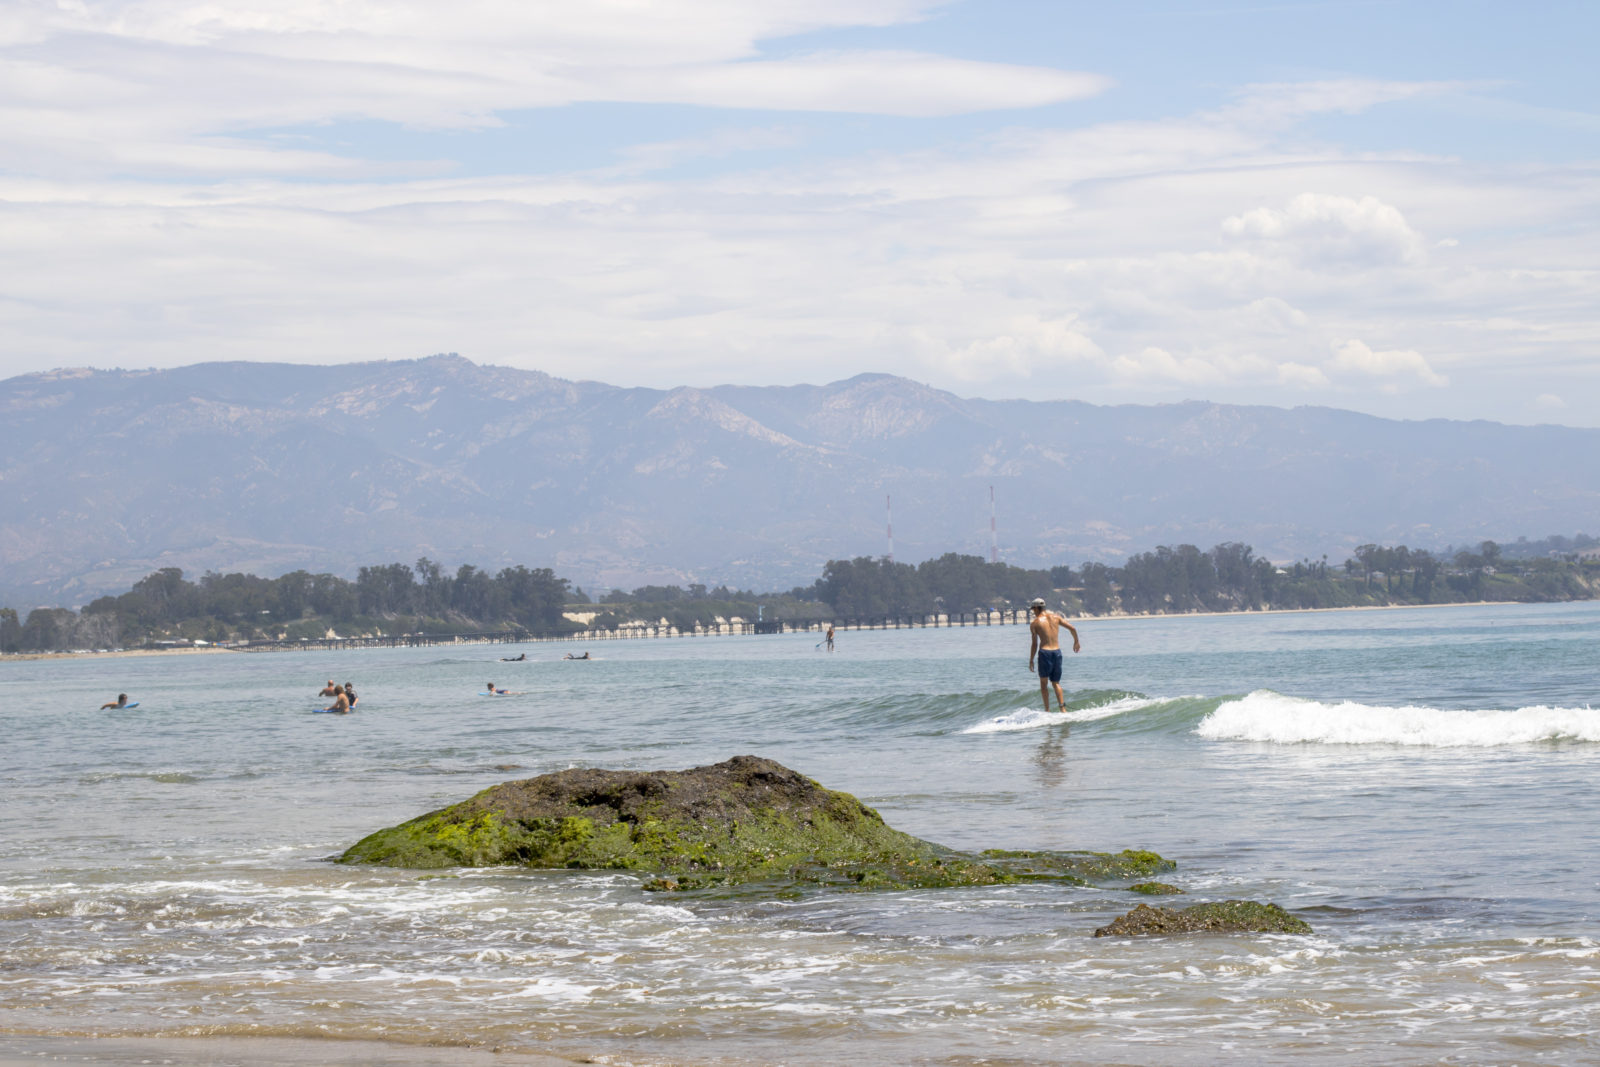 Man Surfing Campus Point in Goleta